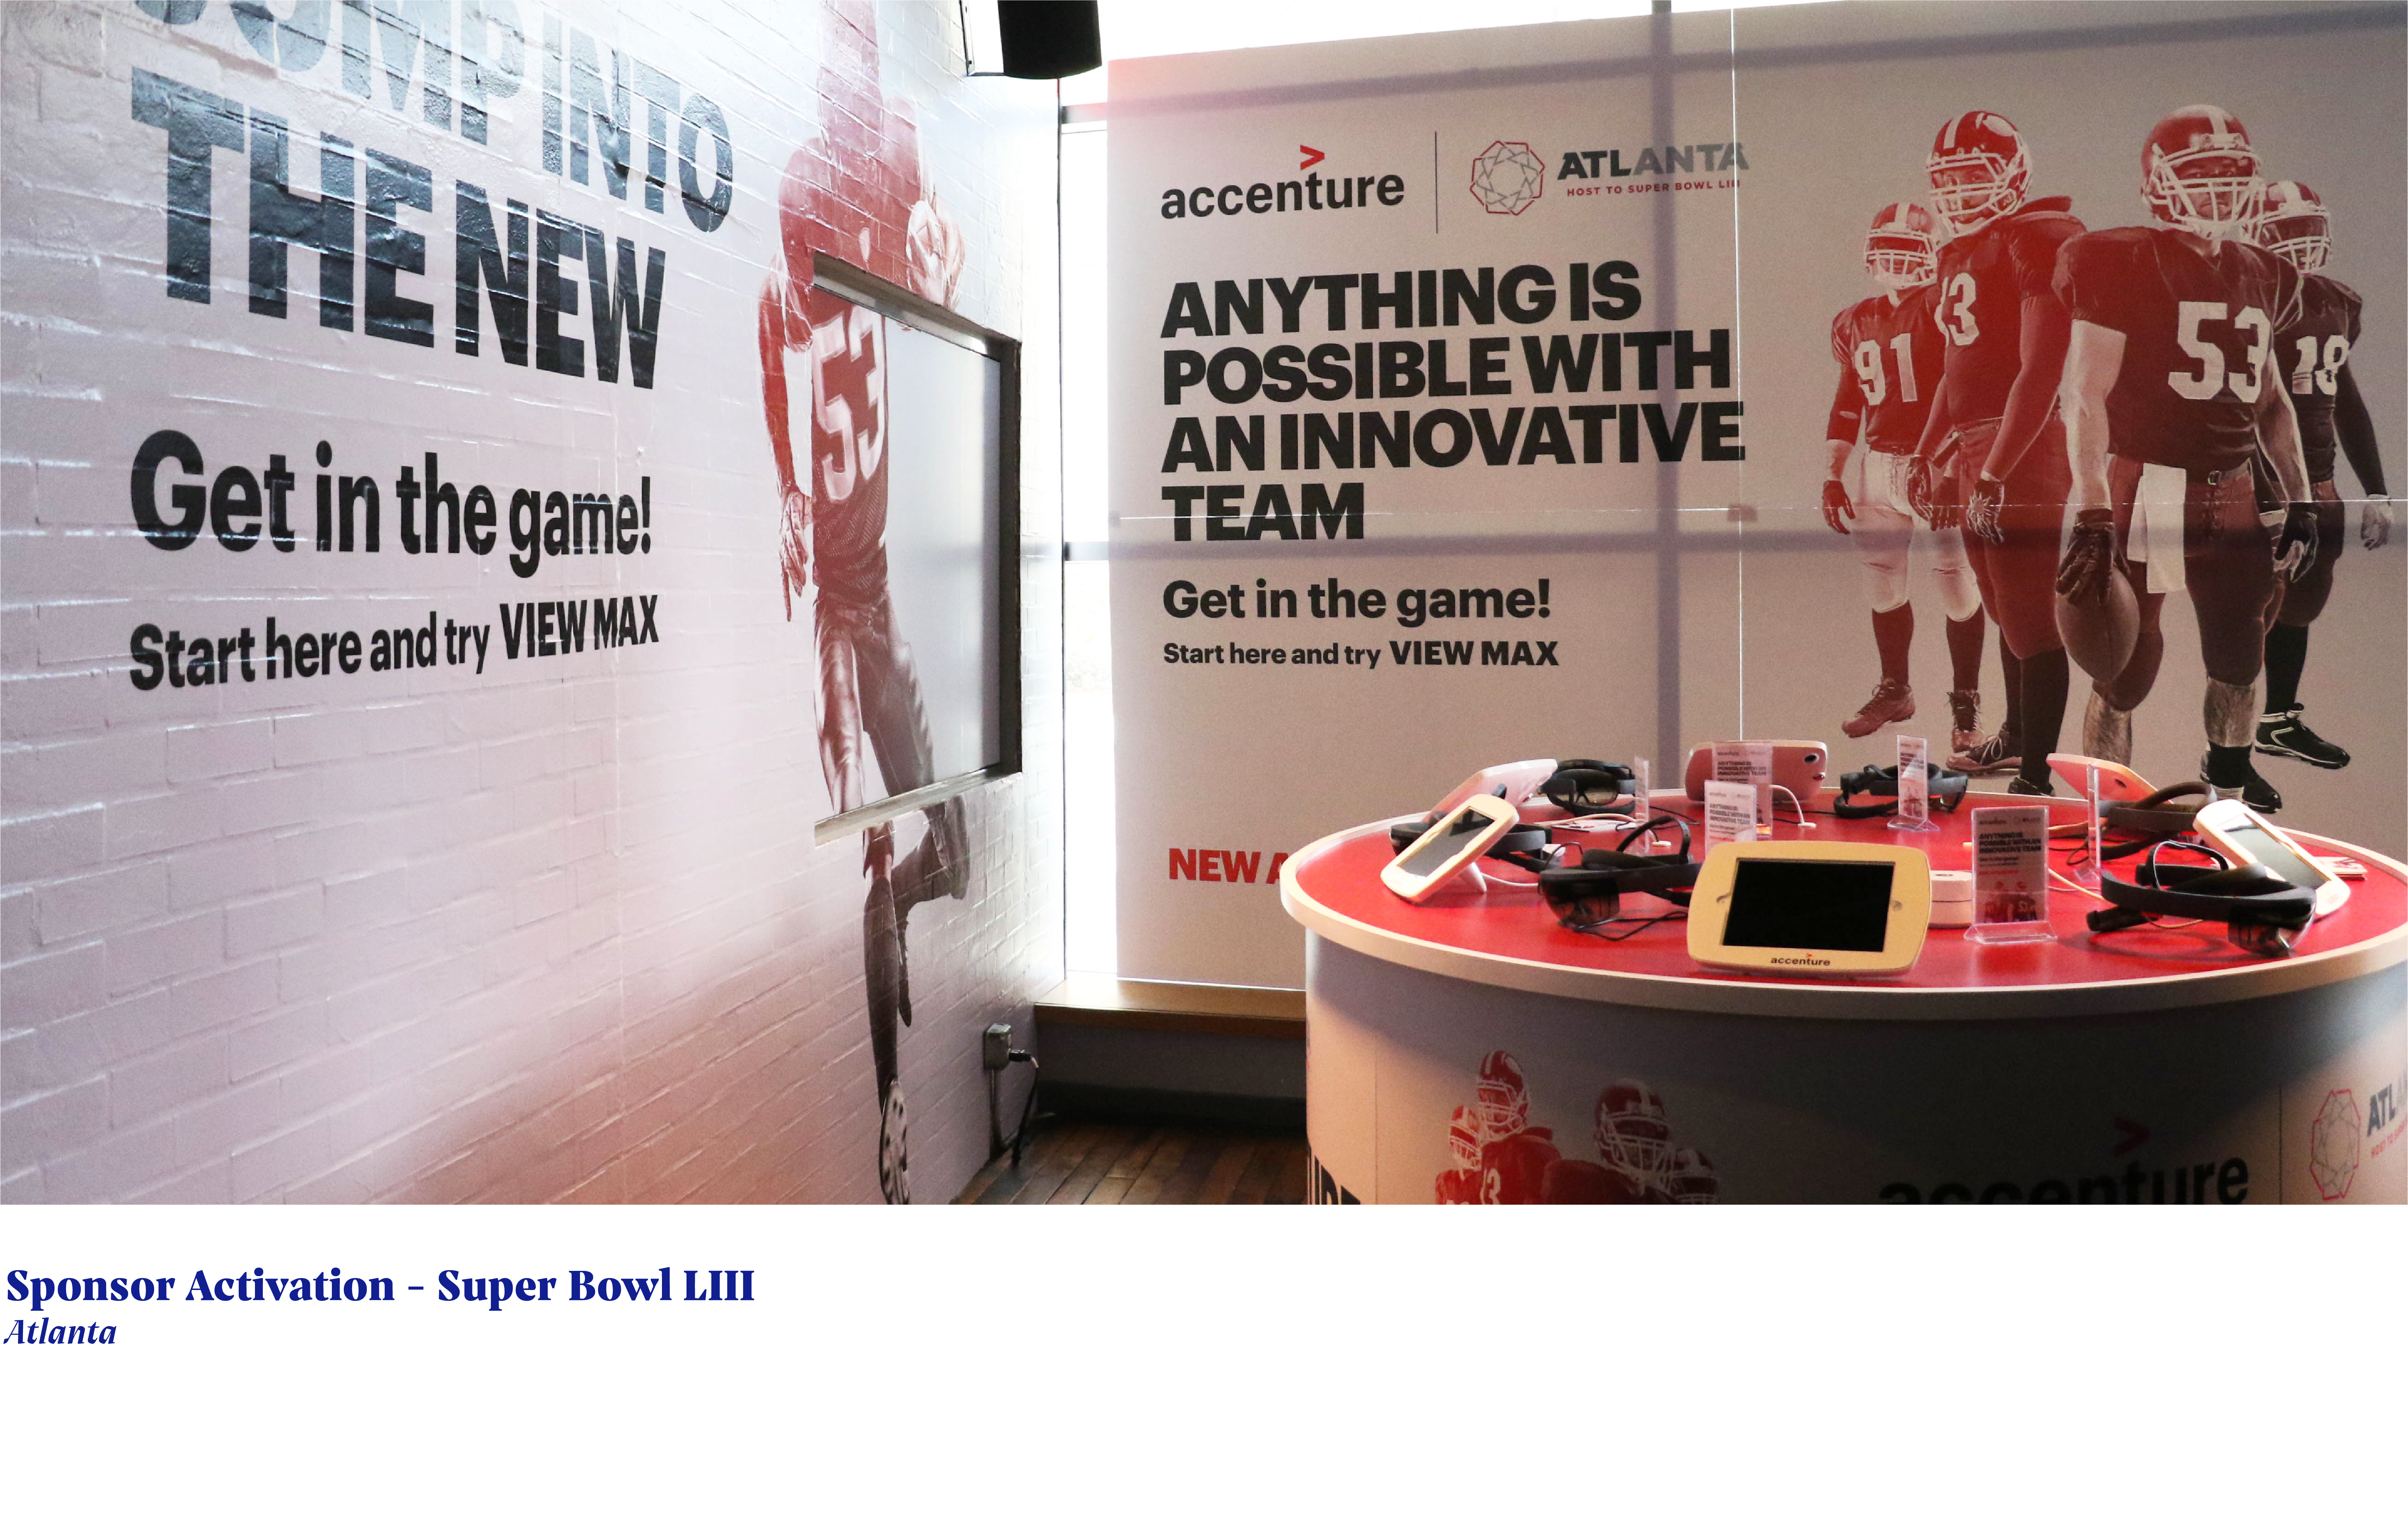 wall graphics on brick with football players and accenture advertising